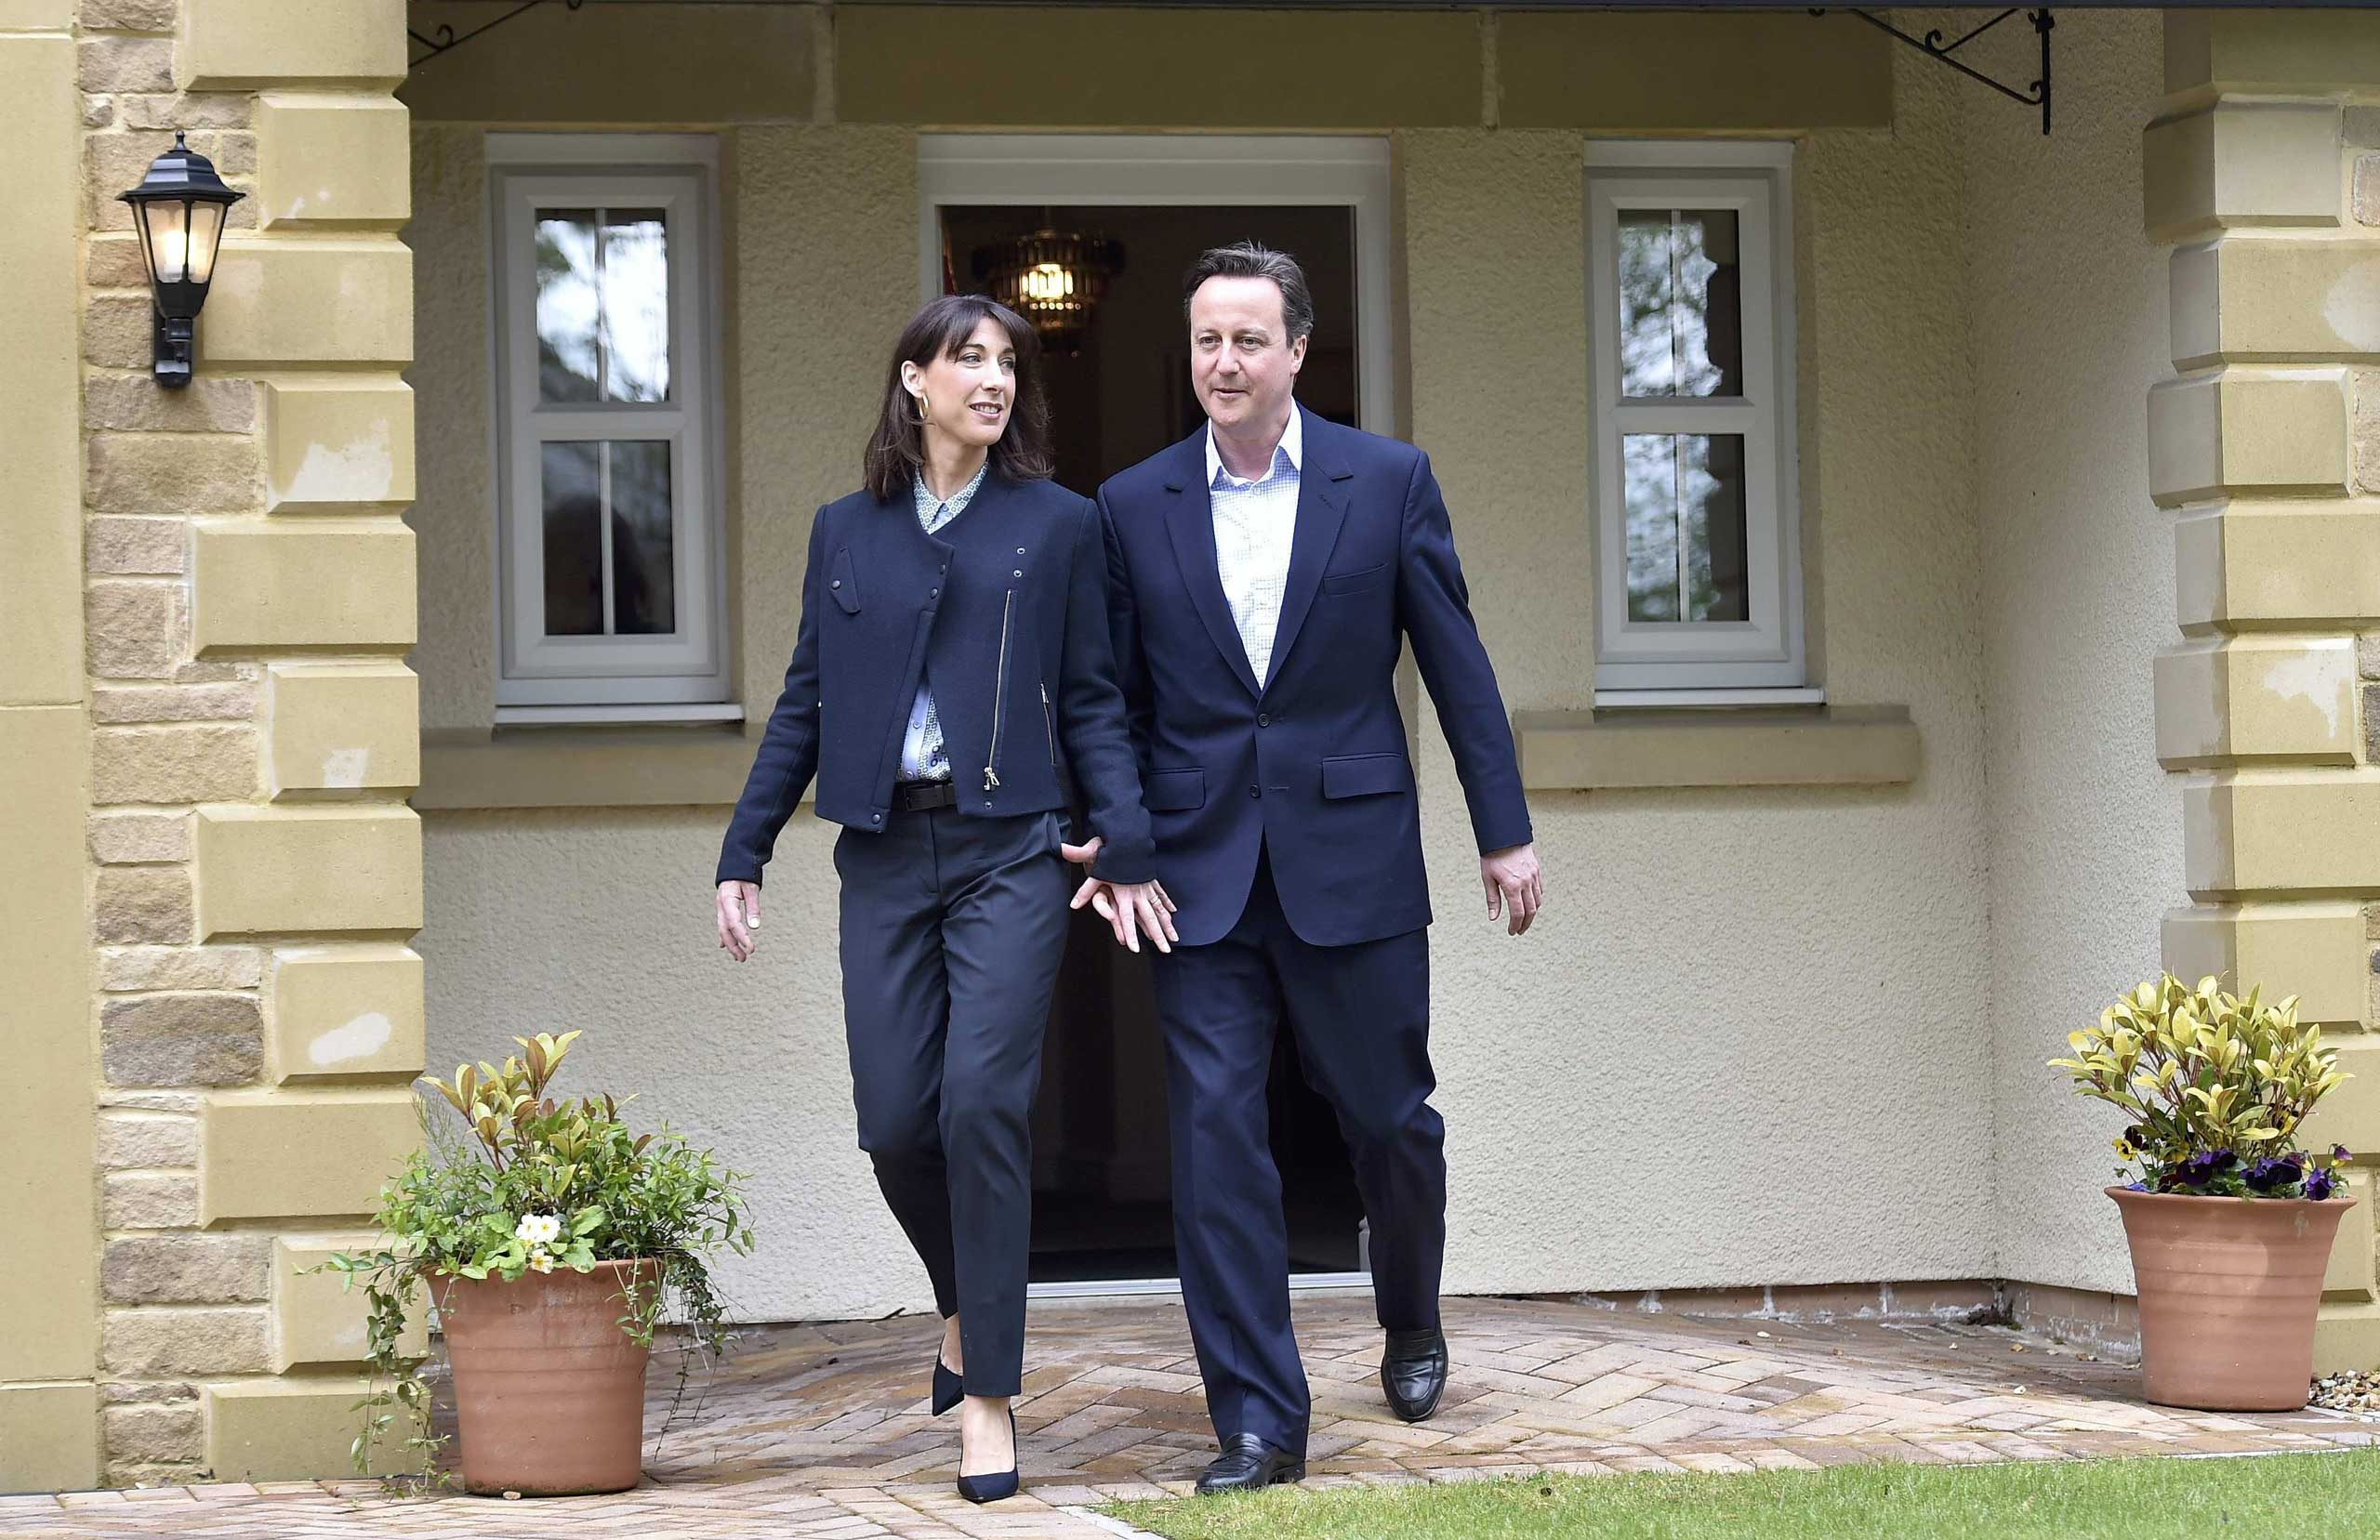 Prime Minister David Cameron and his wife Samantha during a campaign visit to a home-building scheme on May 6, 2015, in Lancaster, England